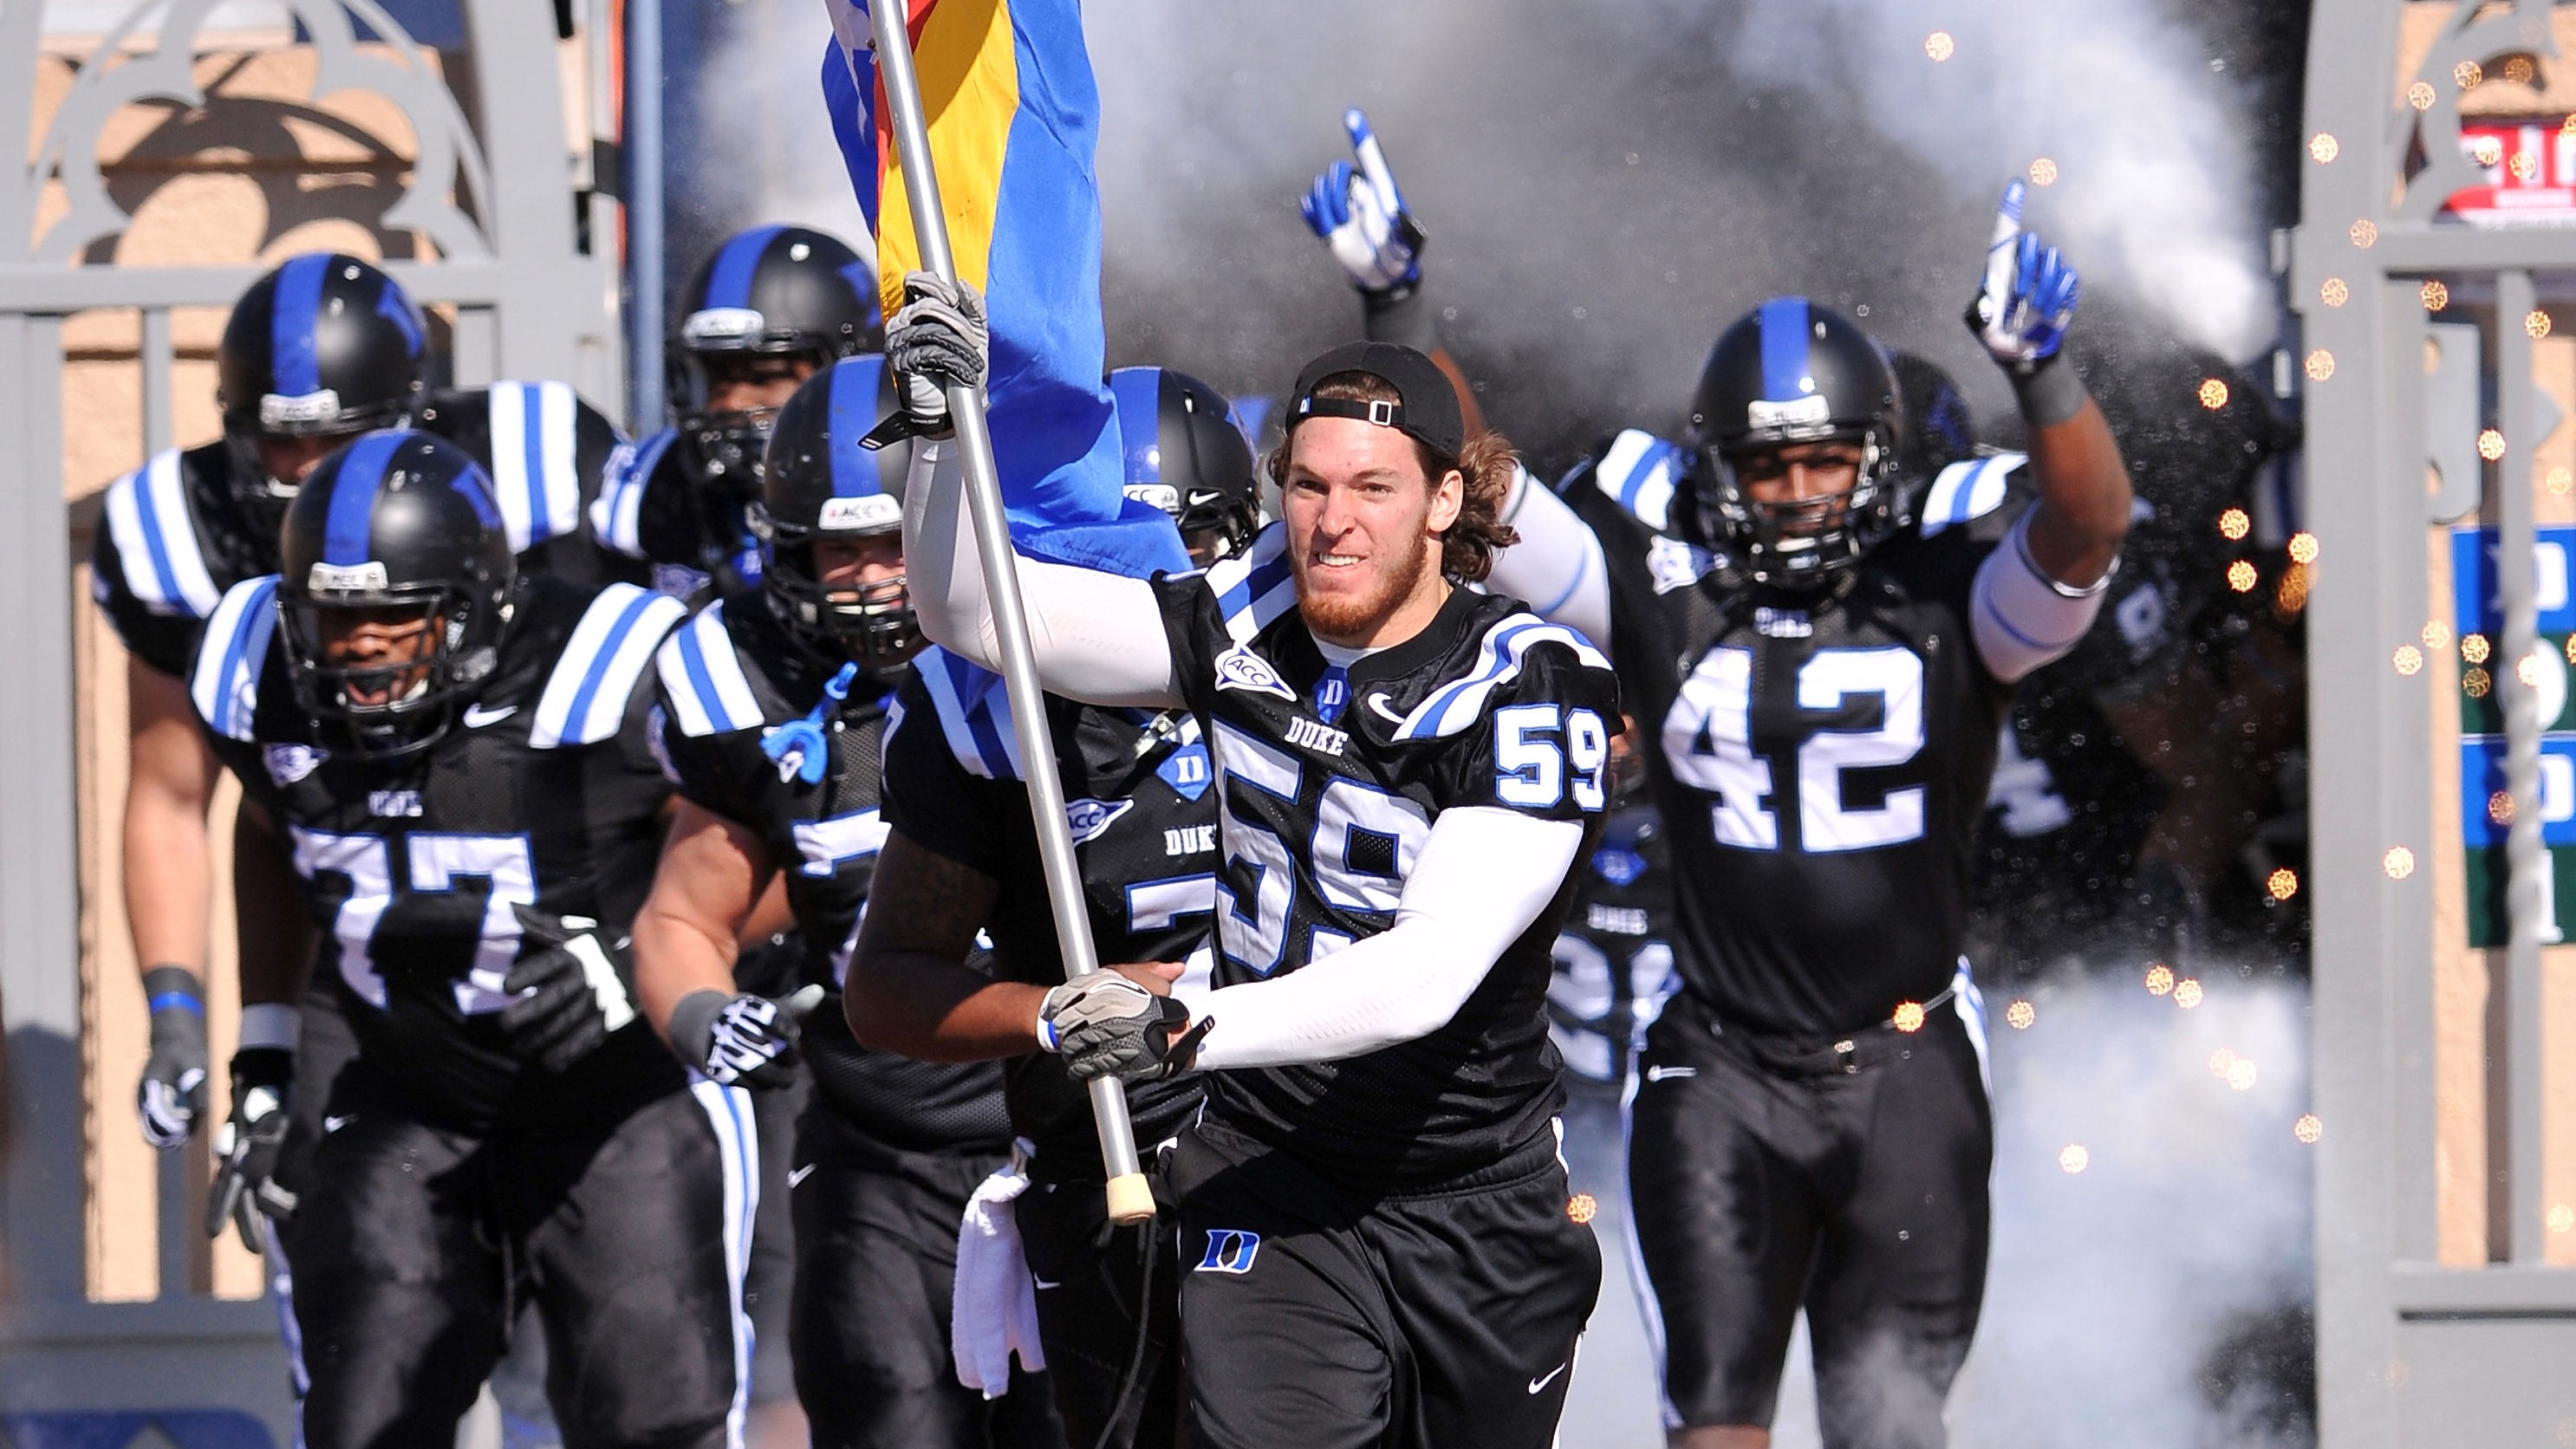 Kelby Brown (No. 59) tore his ACL for the second time in two years.